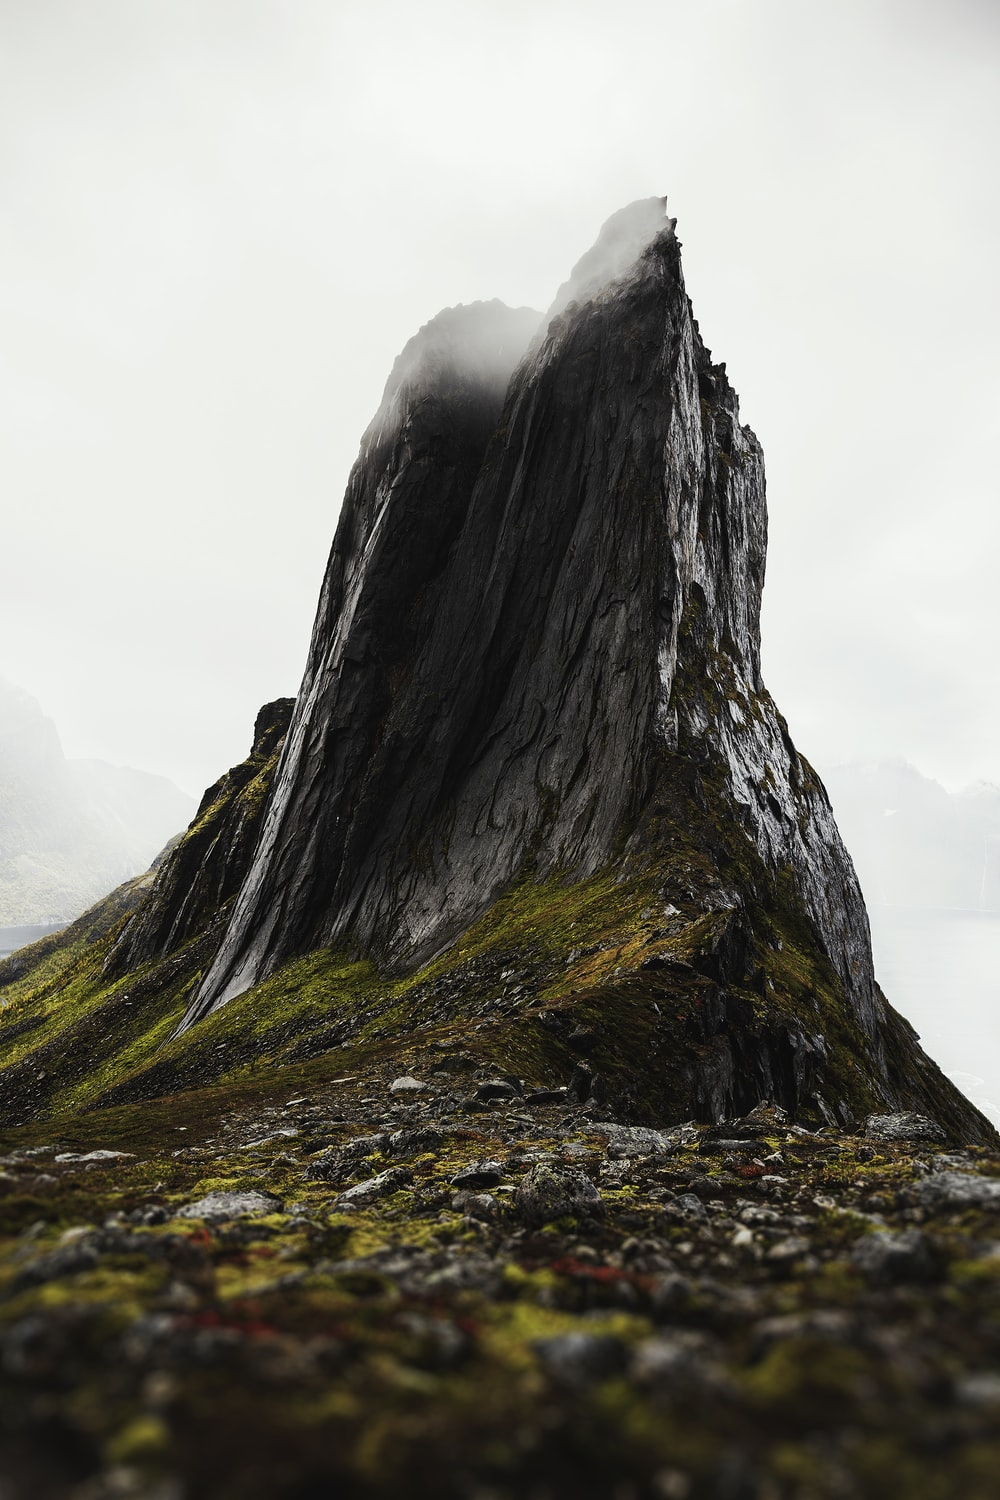 black and gray rock formation